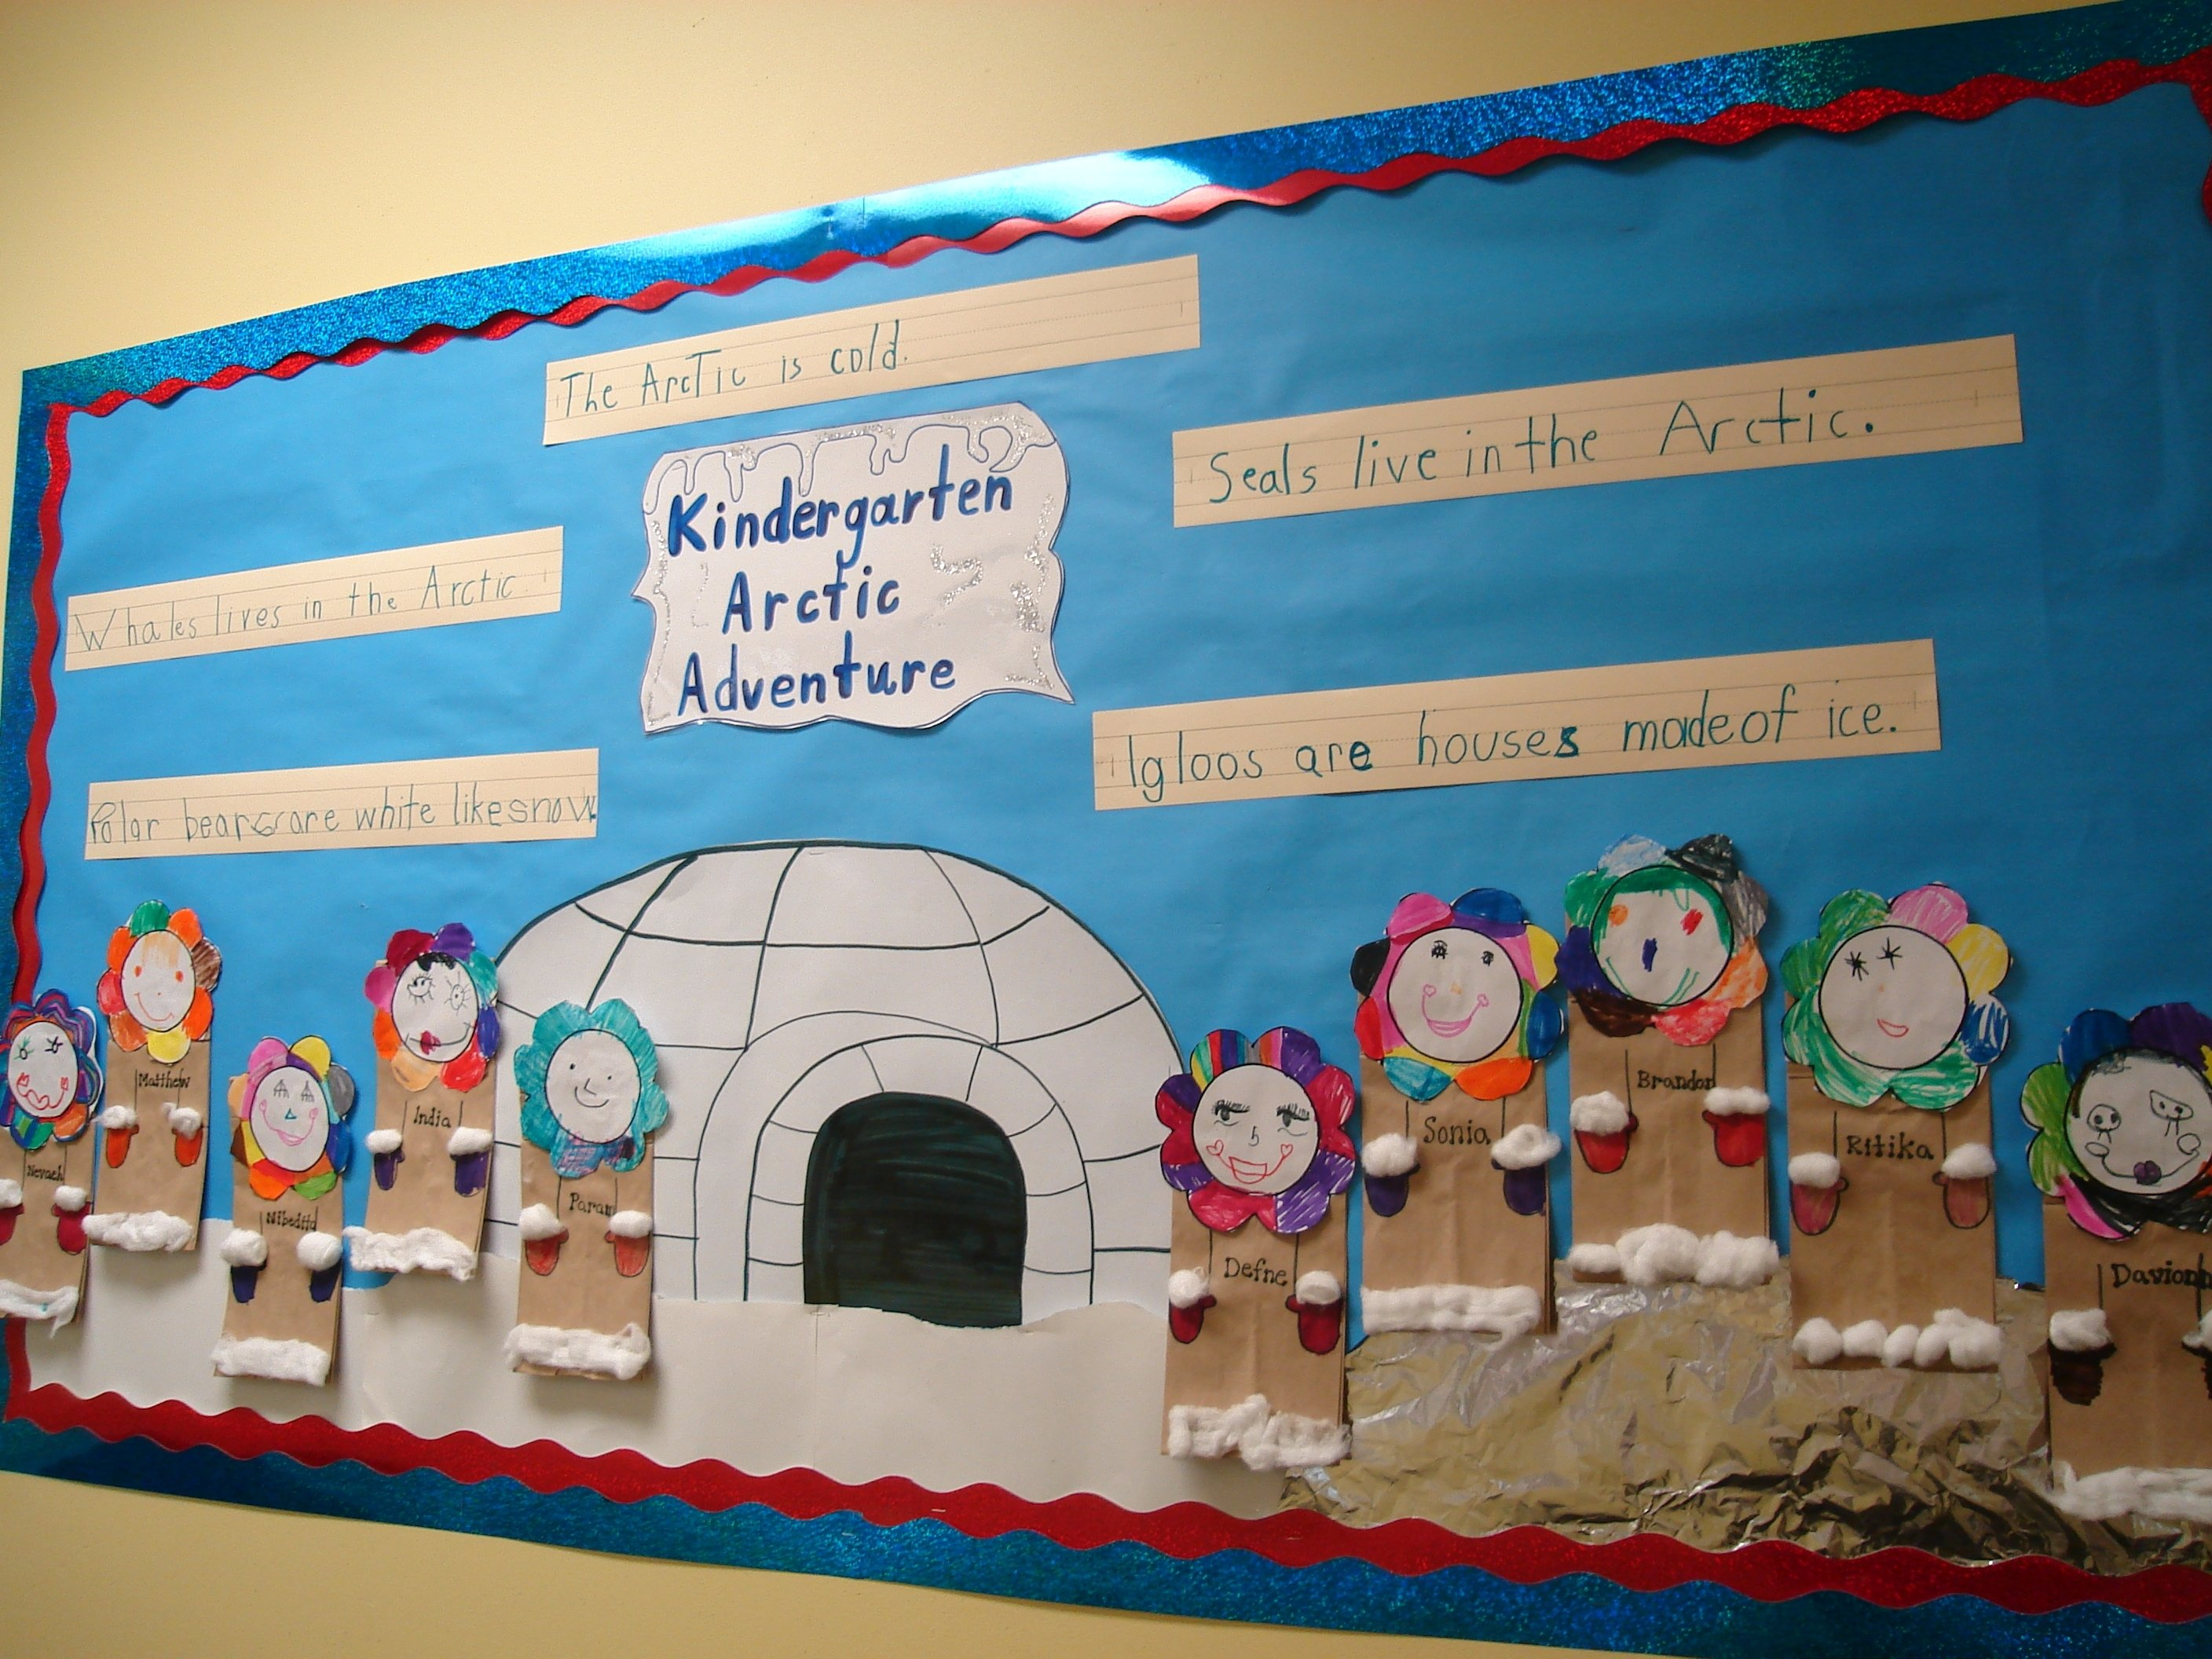 10 Gorgeous Winter Wonderland Bulletin Board Ideas google image result for http lilteacher mypictures arctic 2021